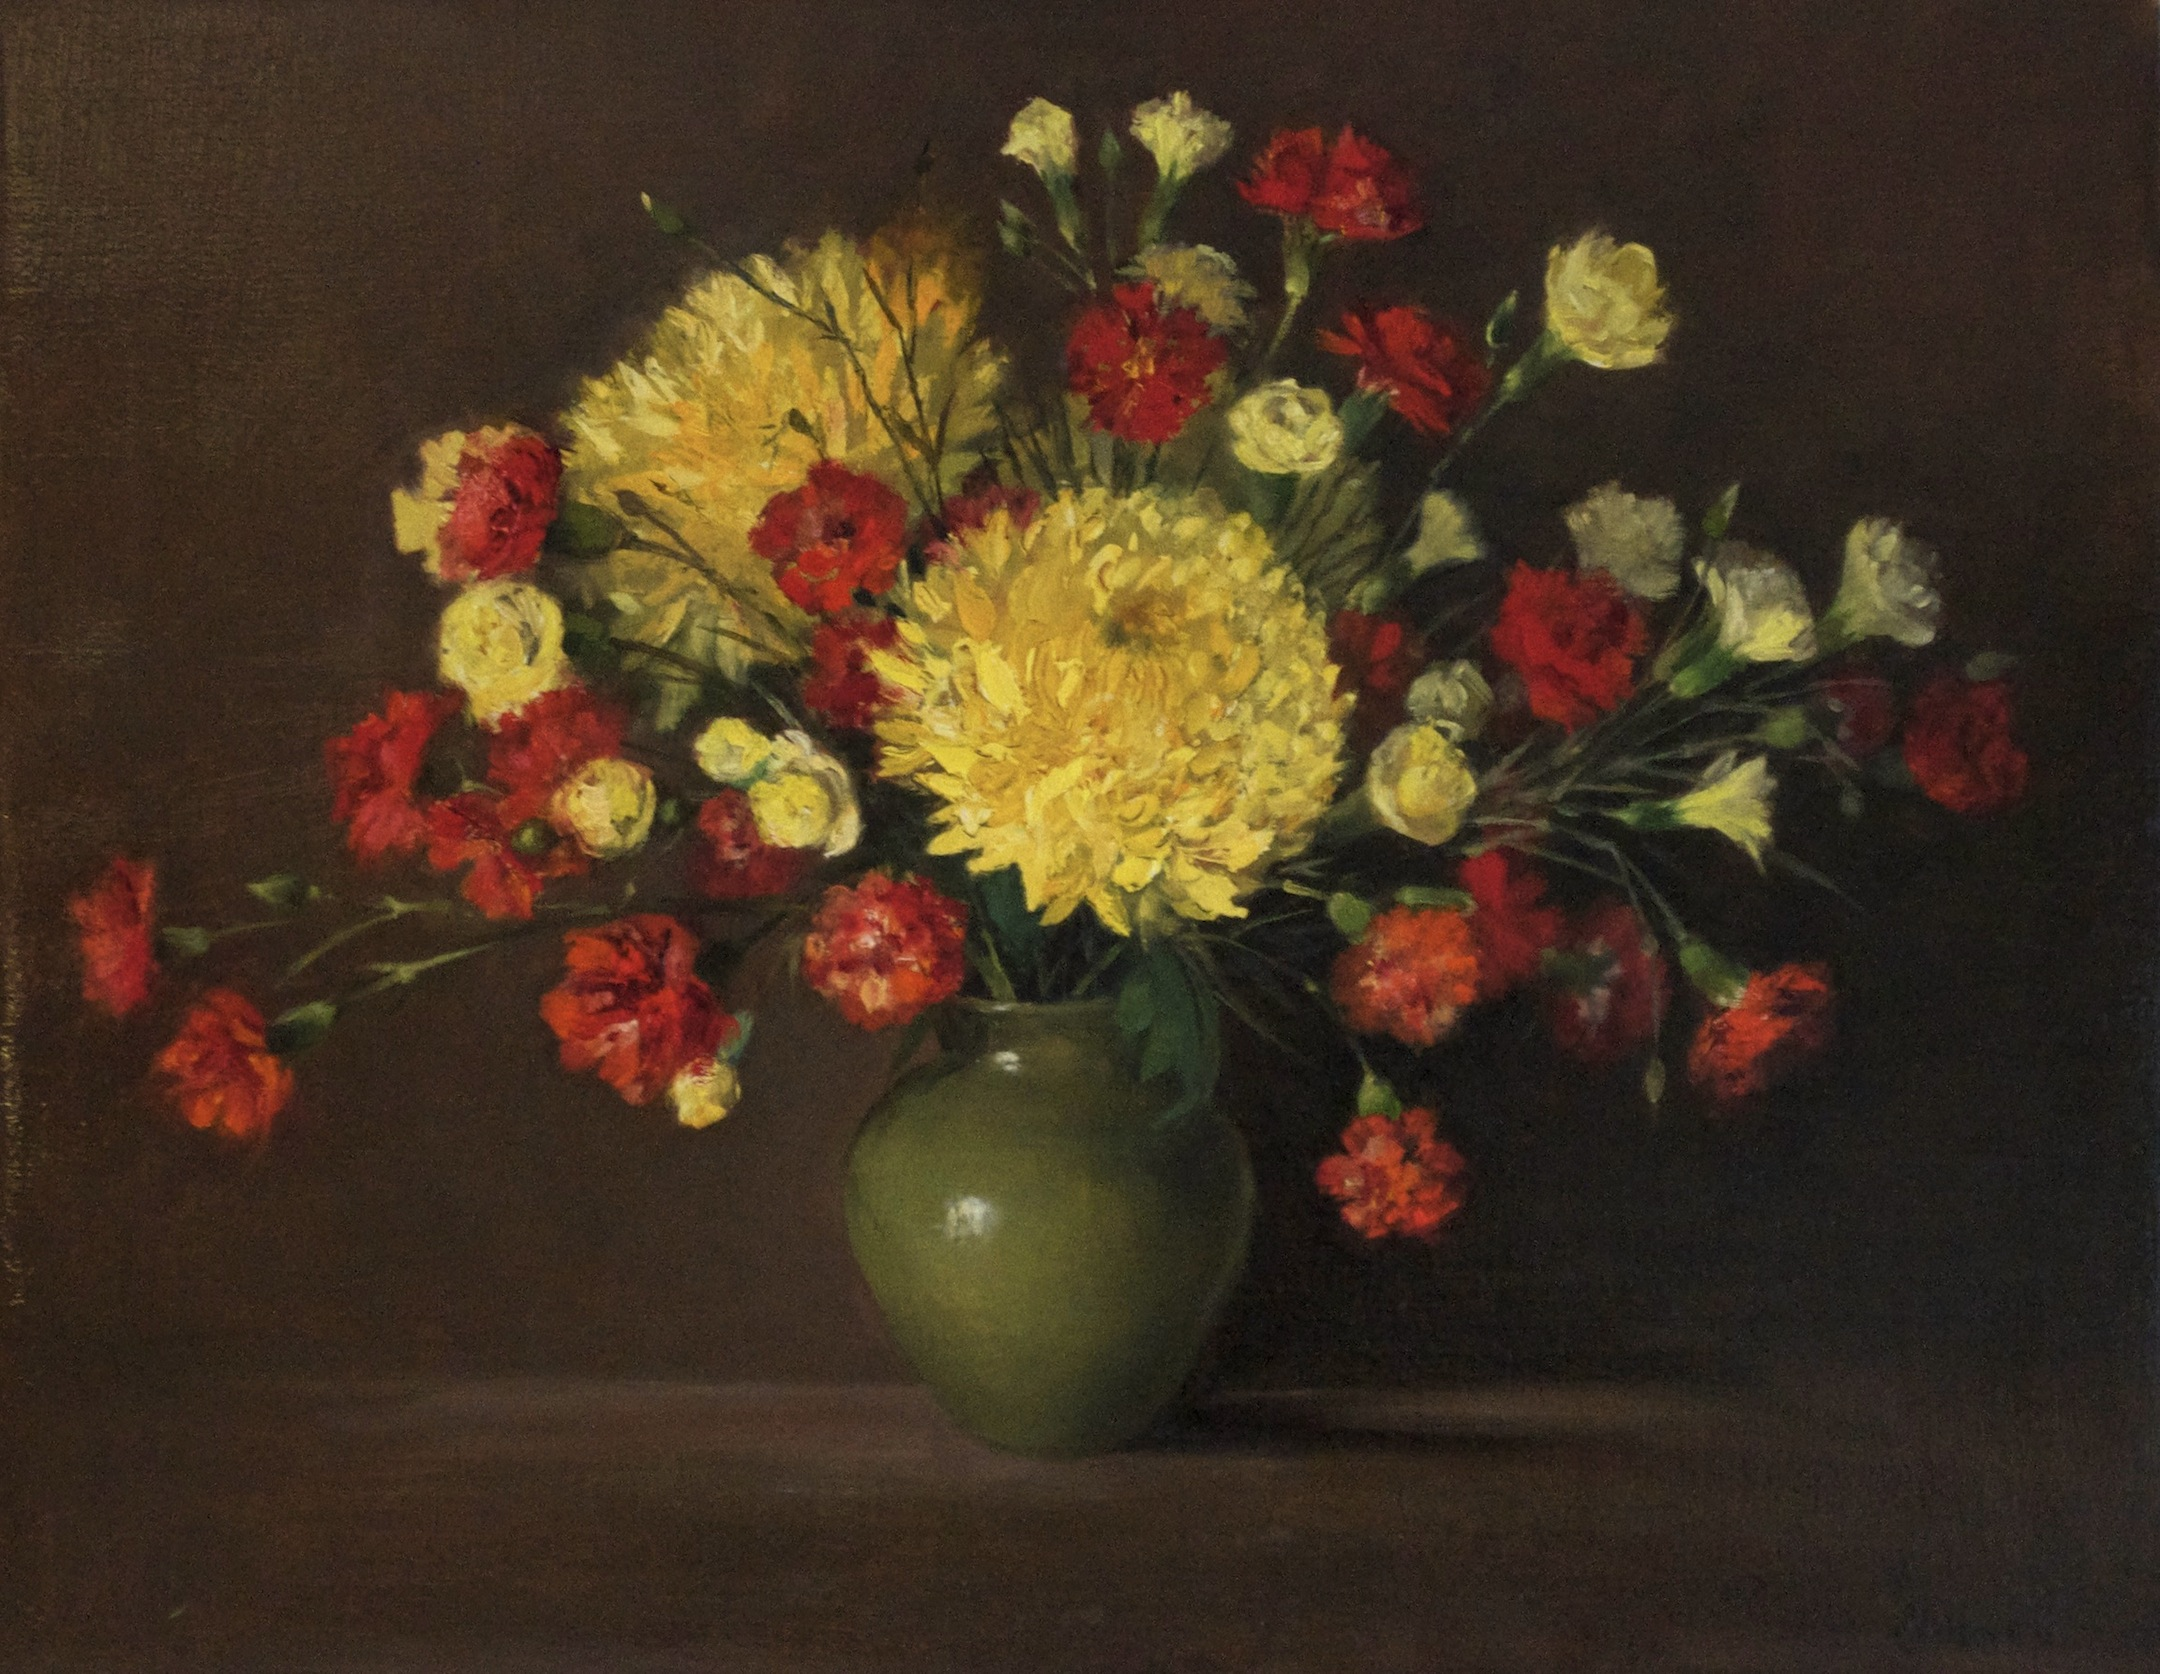 EAlekseyev_Carnations_oil on linen.jpg